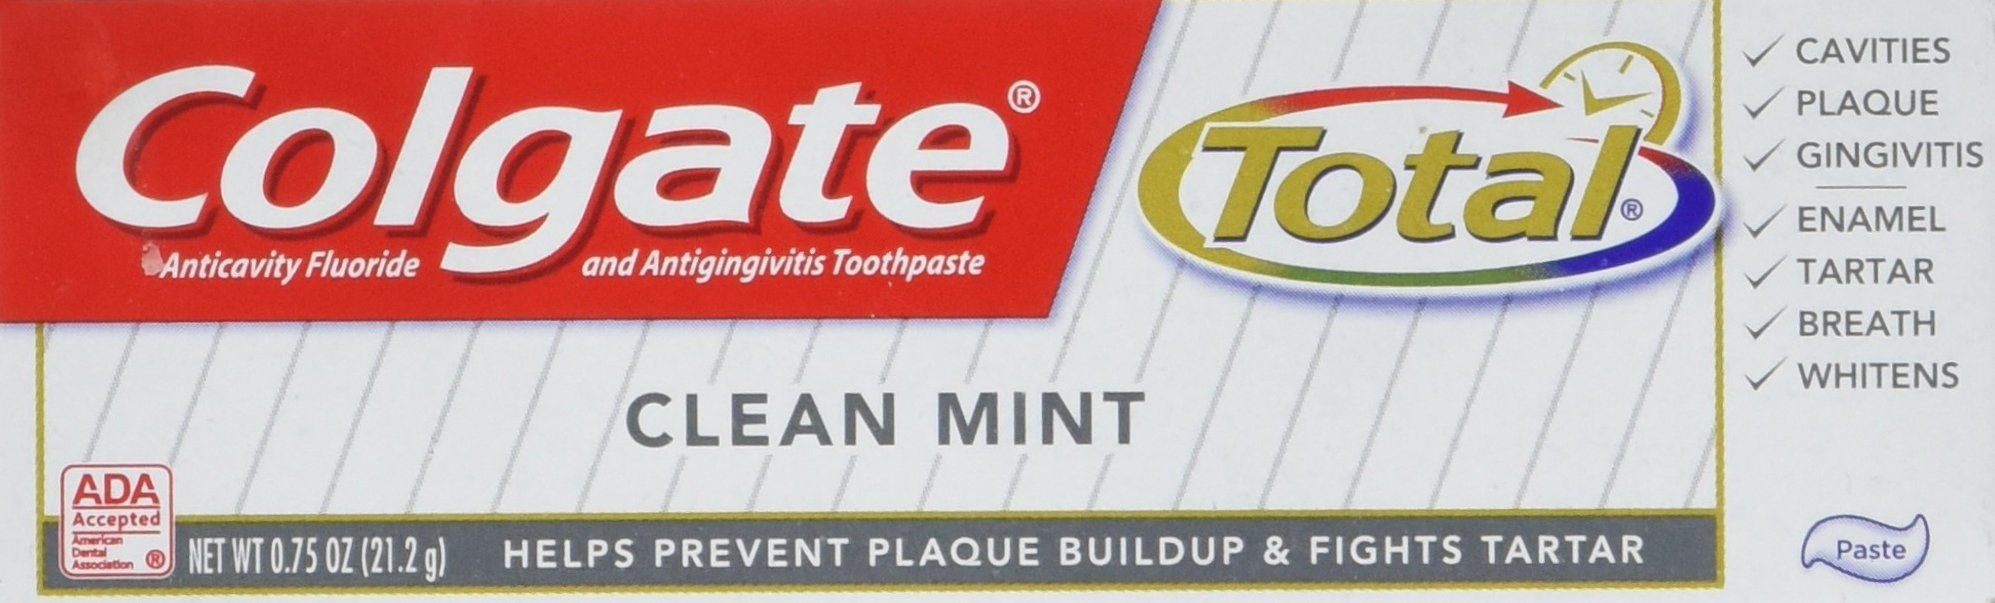 Colgate Total Clean Mint Toothpaste-0.75 oz, Travel Trial size - CASE PACK of 24 tubes by Colgate (Image #4)